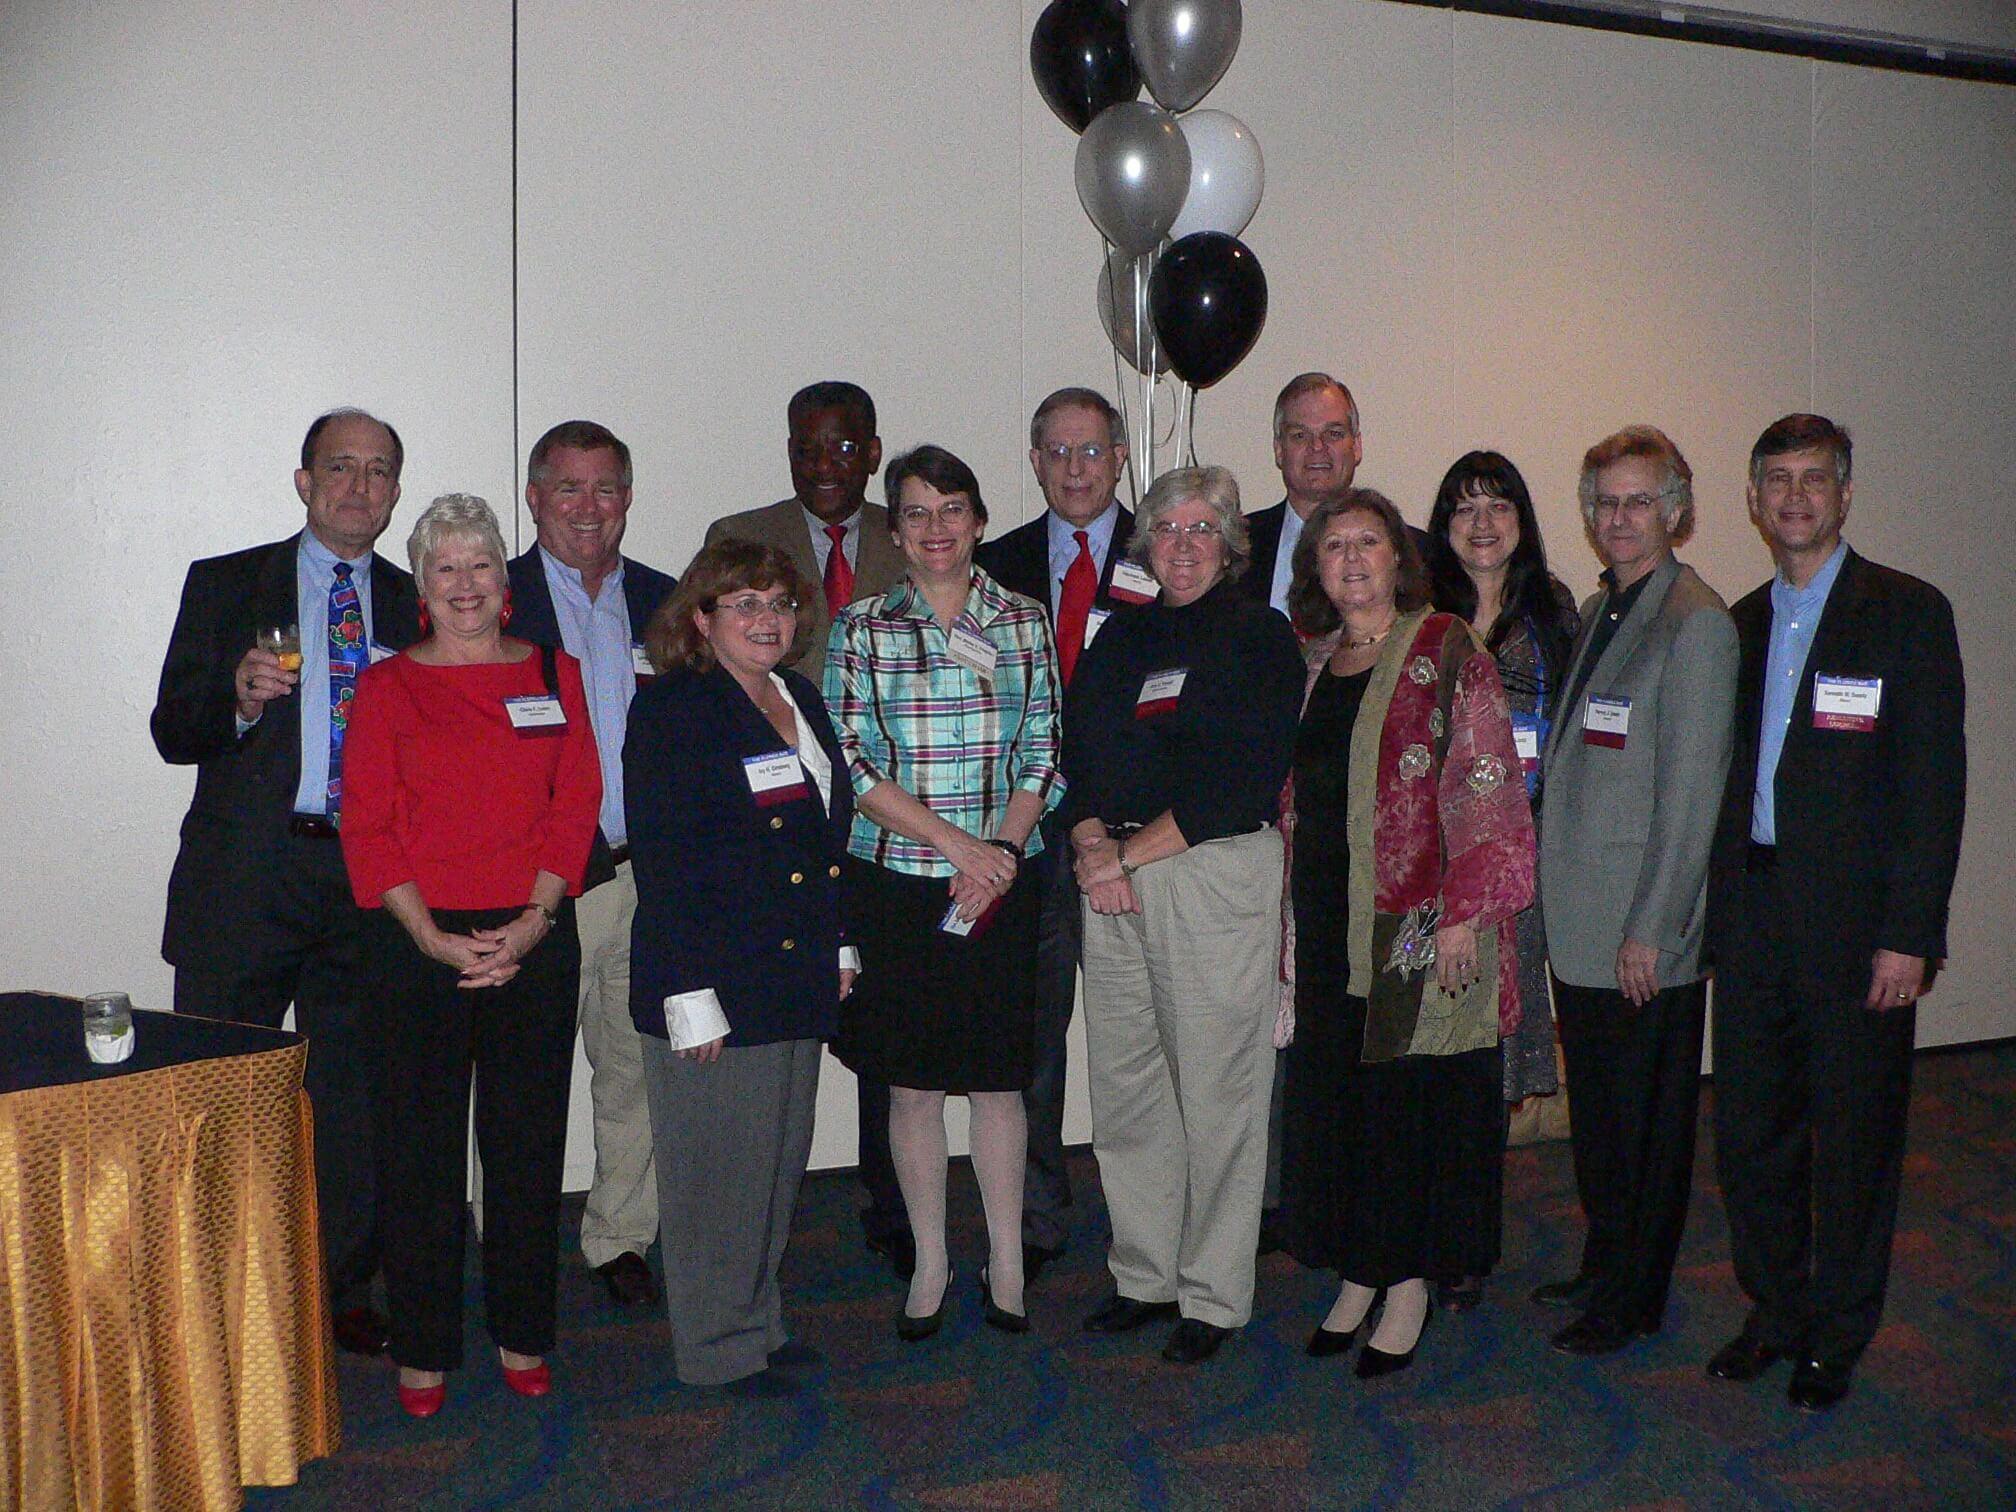 Photo of CLS 30th Anniversary Reception 2007